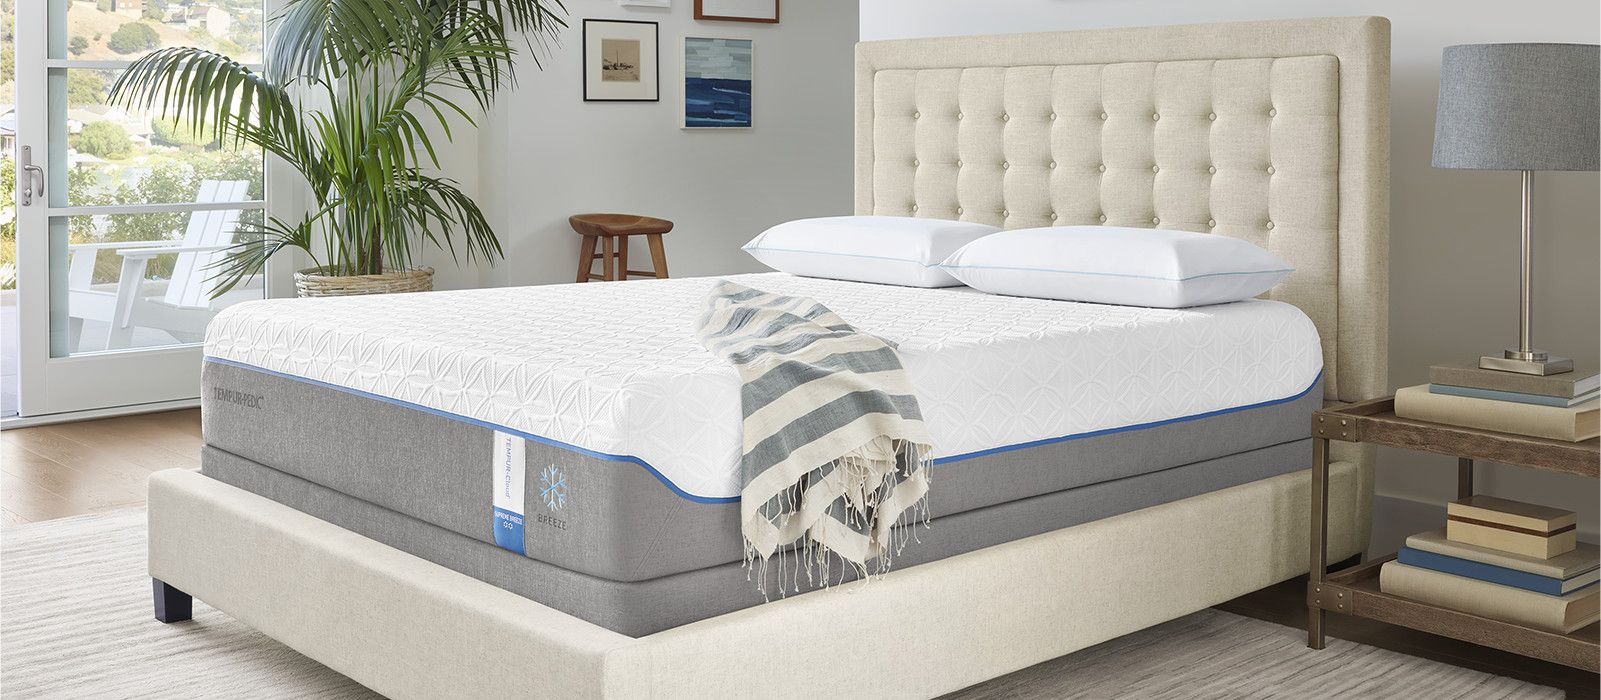 Tempur Cloud Supreme Breeze From Tempur Pedic Mattress Sets